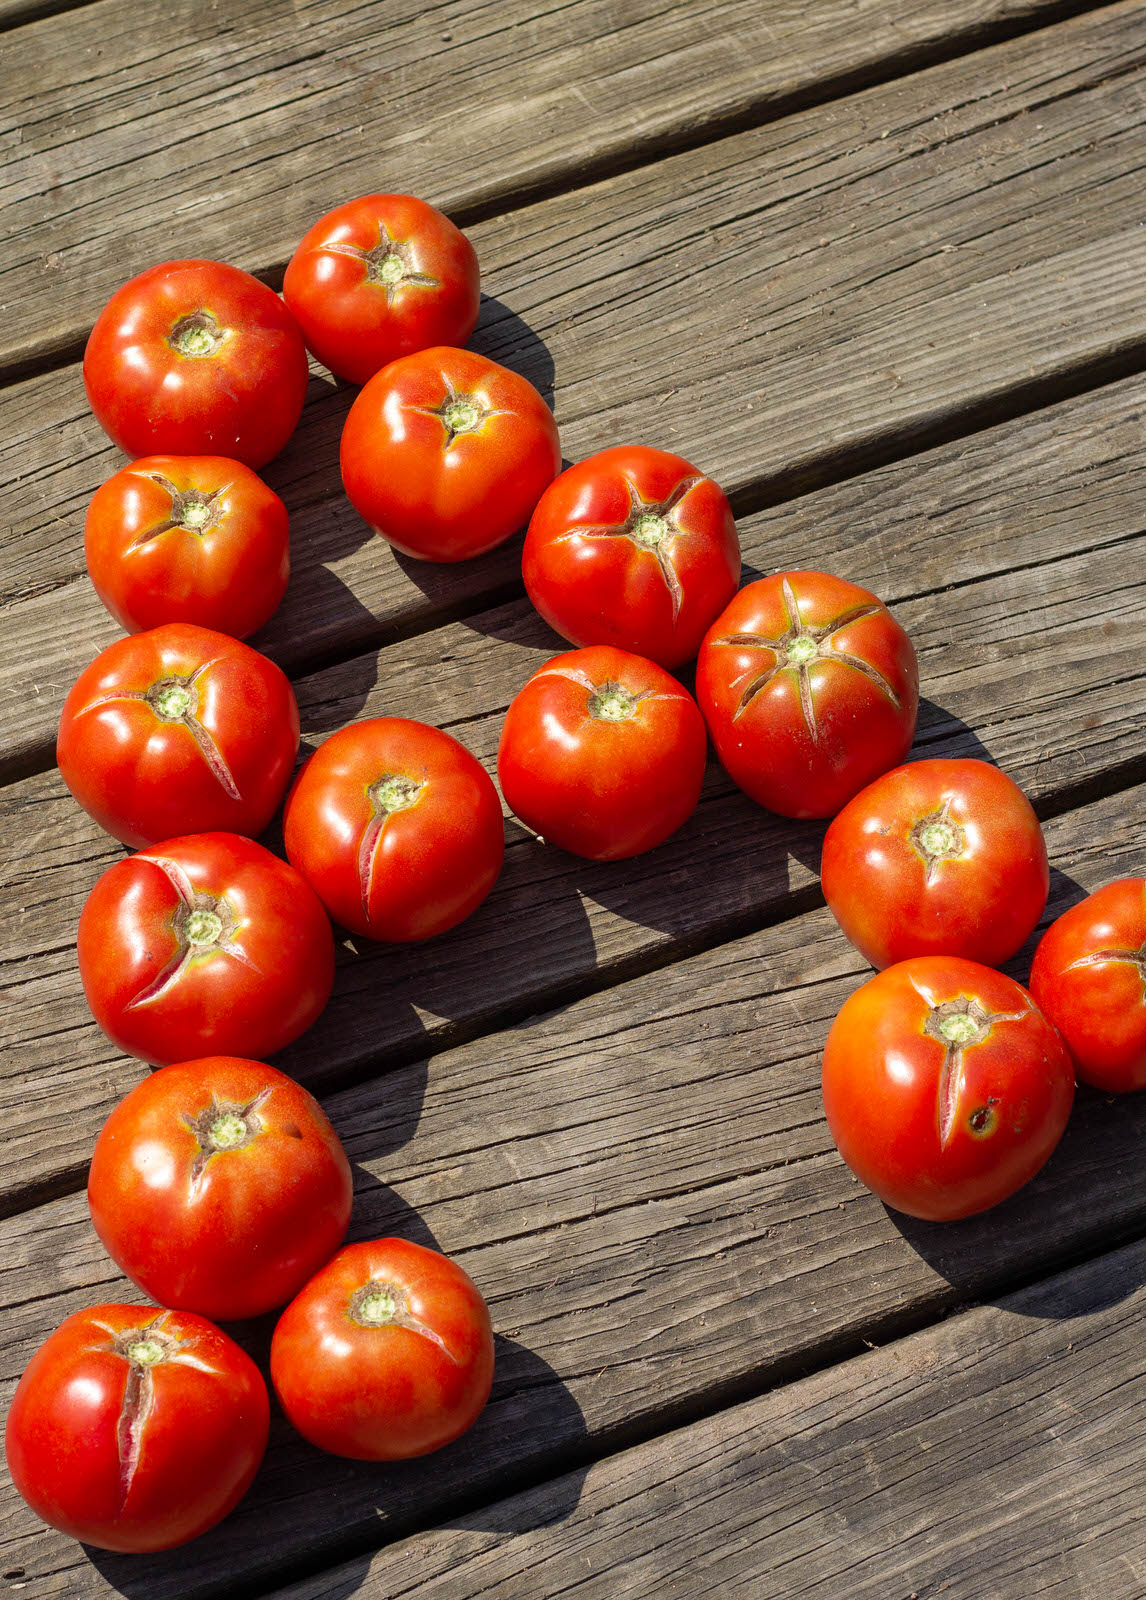 Atwater's fresh tomatoes